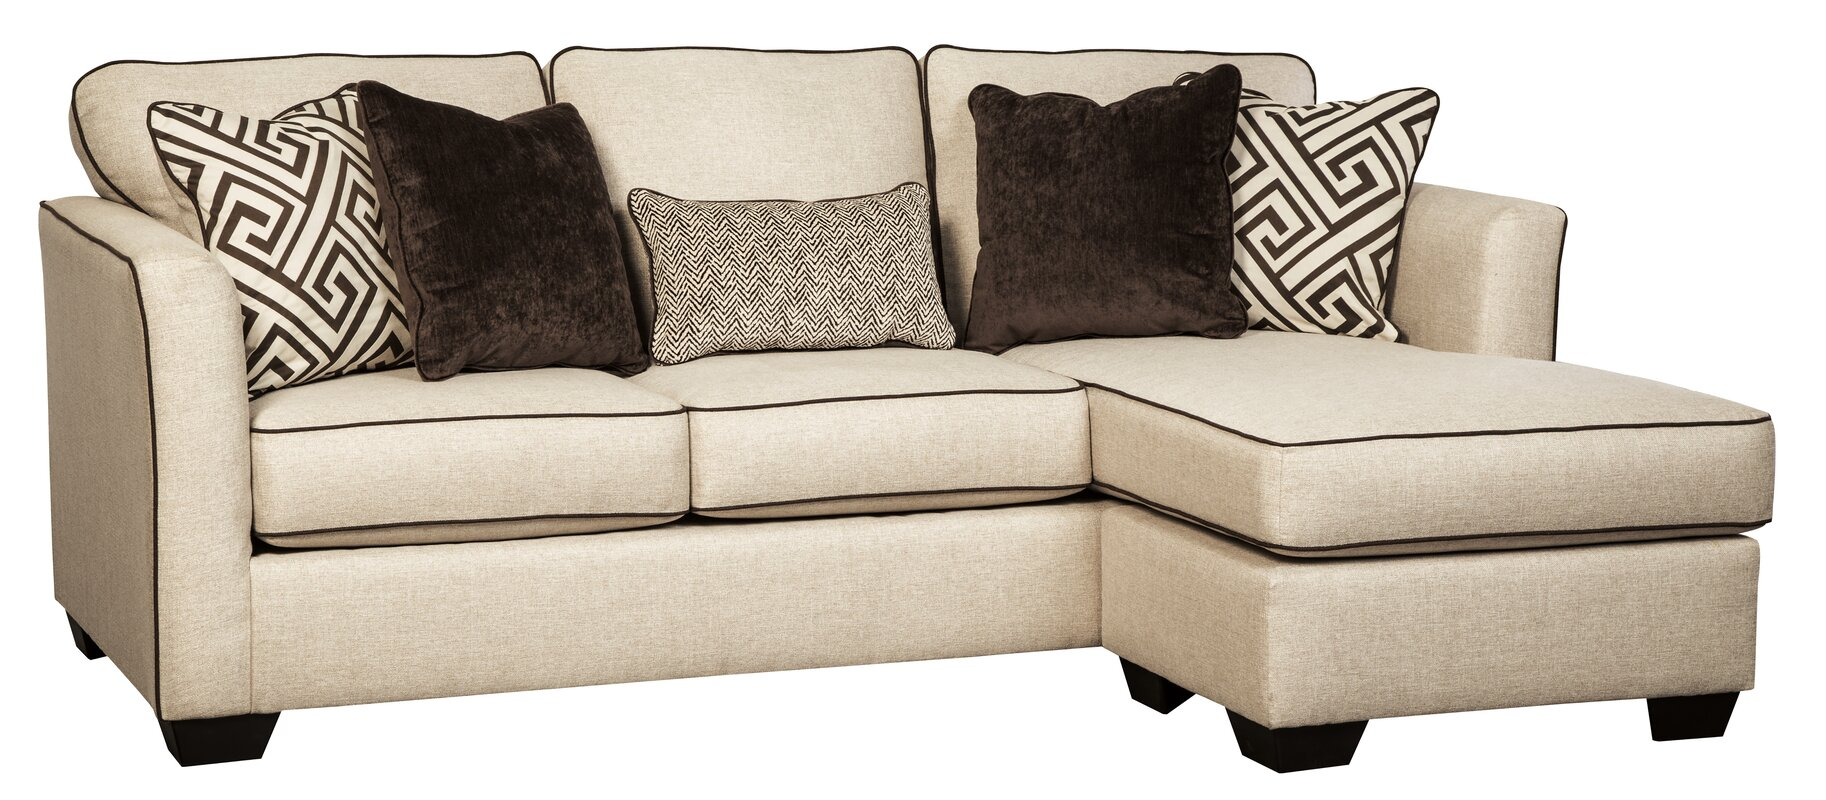 carlinworth sofa chaise reviews birch lane. Black Bedroom Furniture Sets. Home Design Ideas